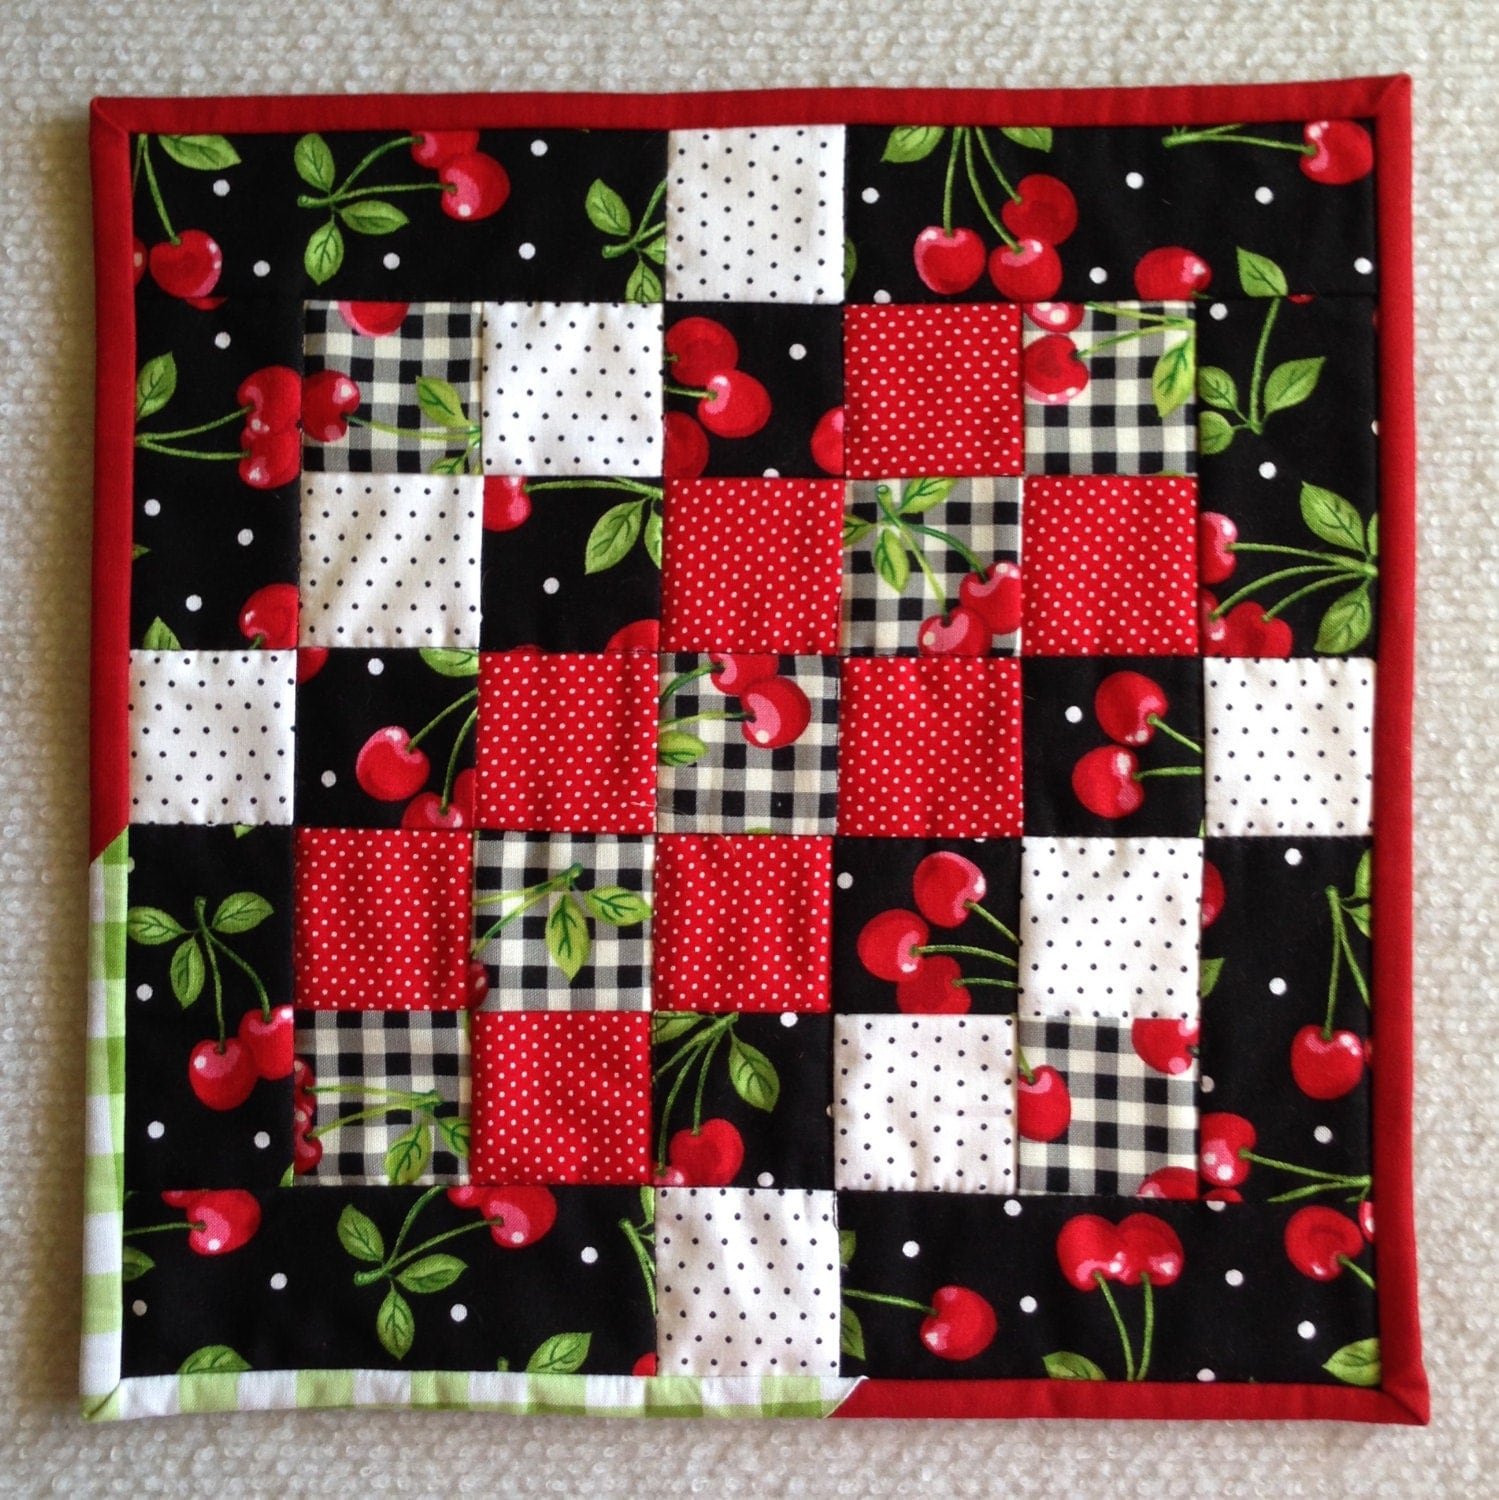 Cherry Mug Rug Mini Patchwork Quilt Black White With Red